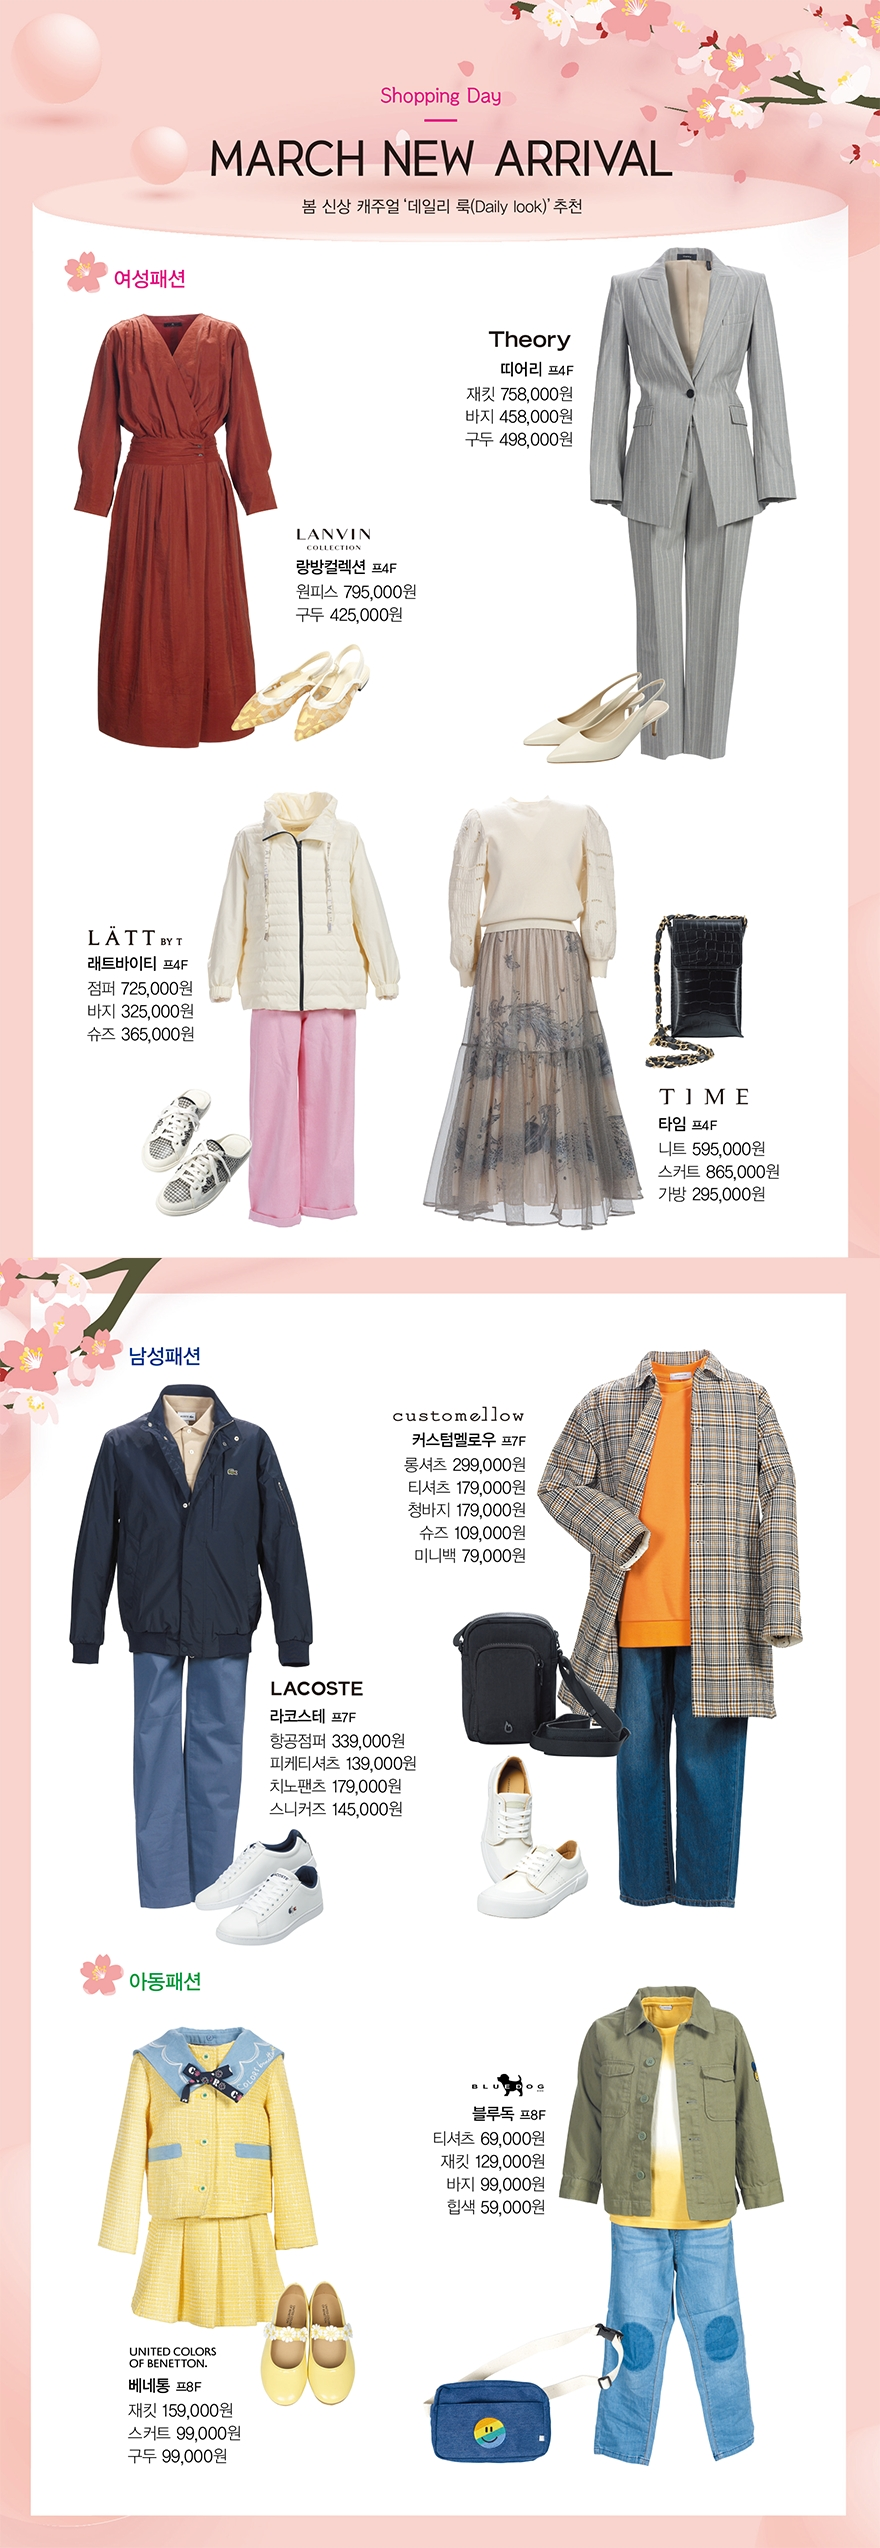 March New Arrival